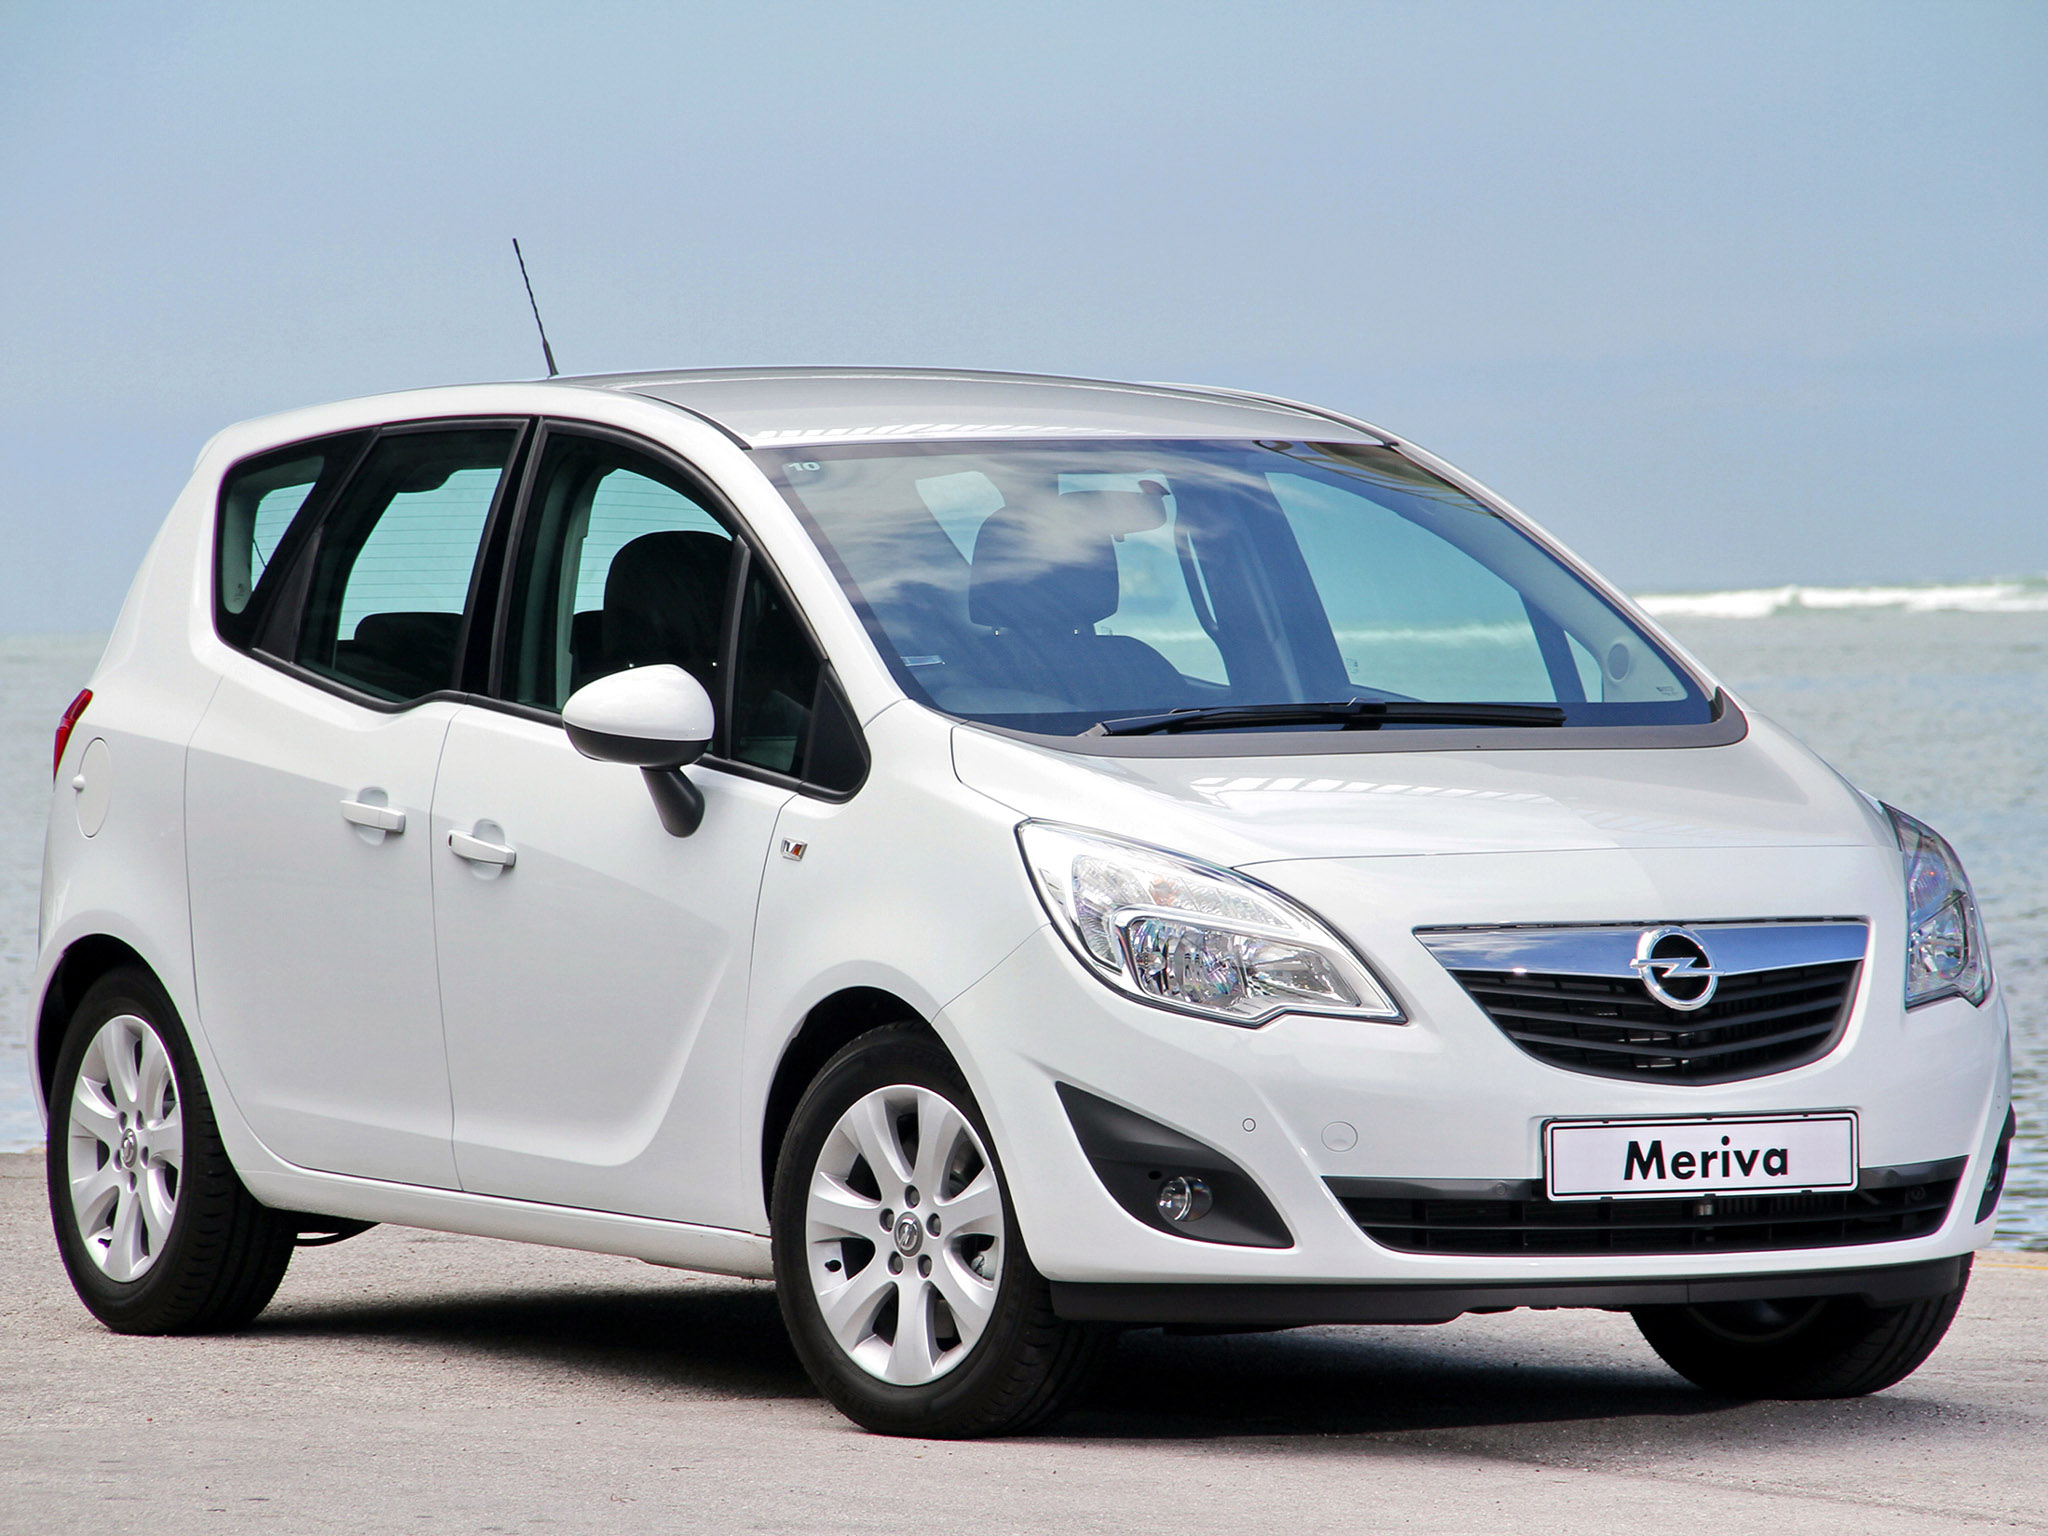 opel meriva 1 4 2012 technical specifications interior and exterior photo. Black Bedroom Furniture Sets. Home Design Ideas